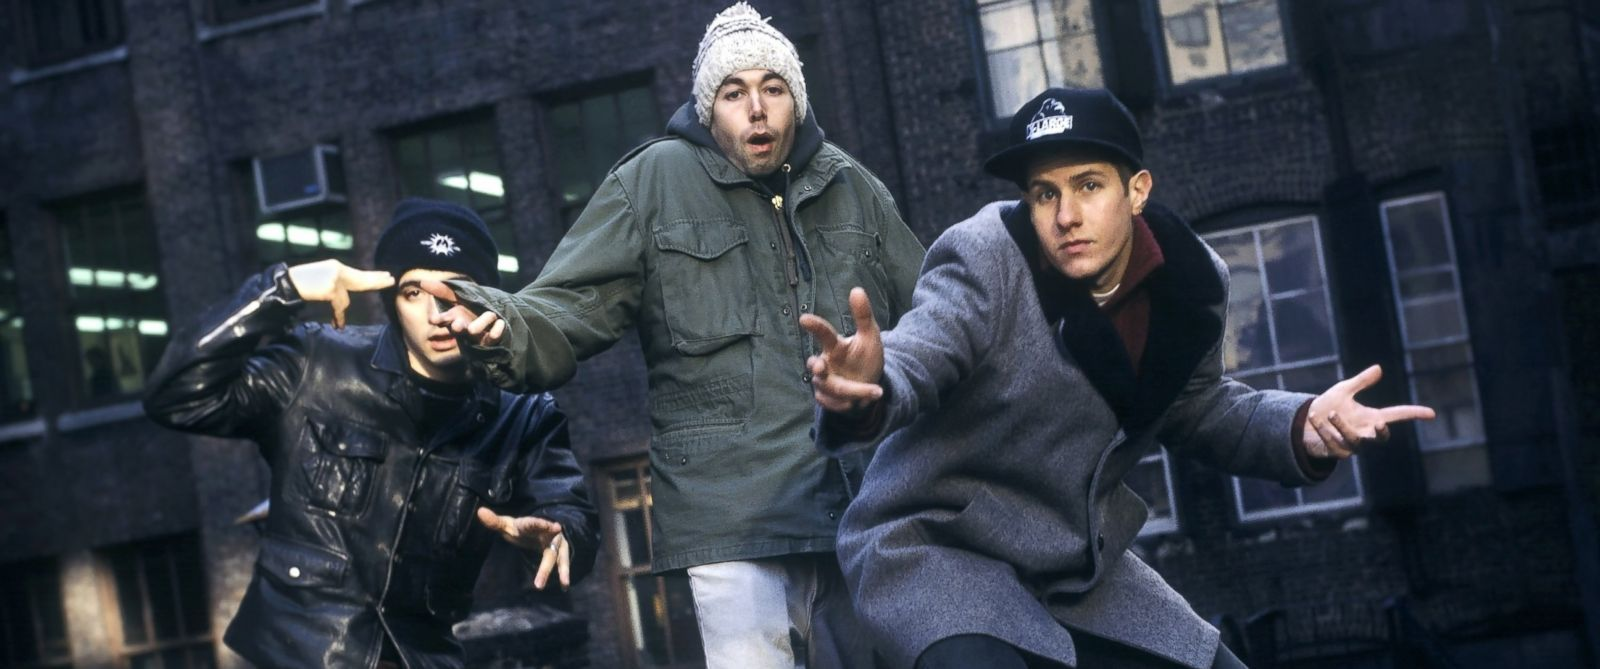 The Beastie Boys Are Officially Done